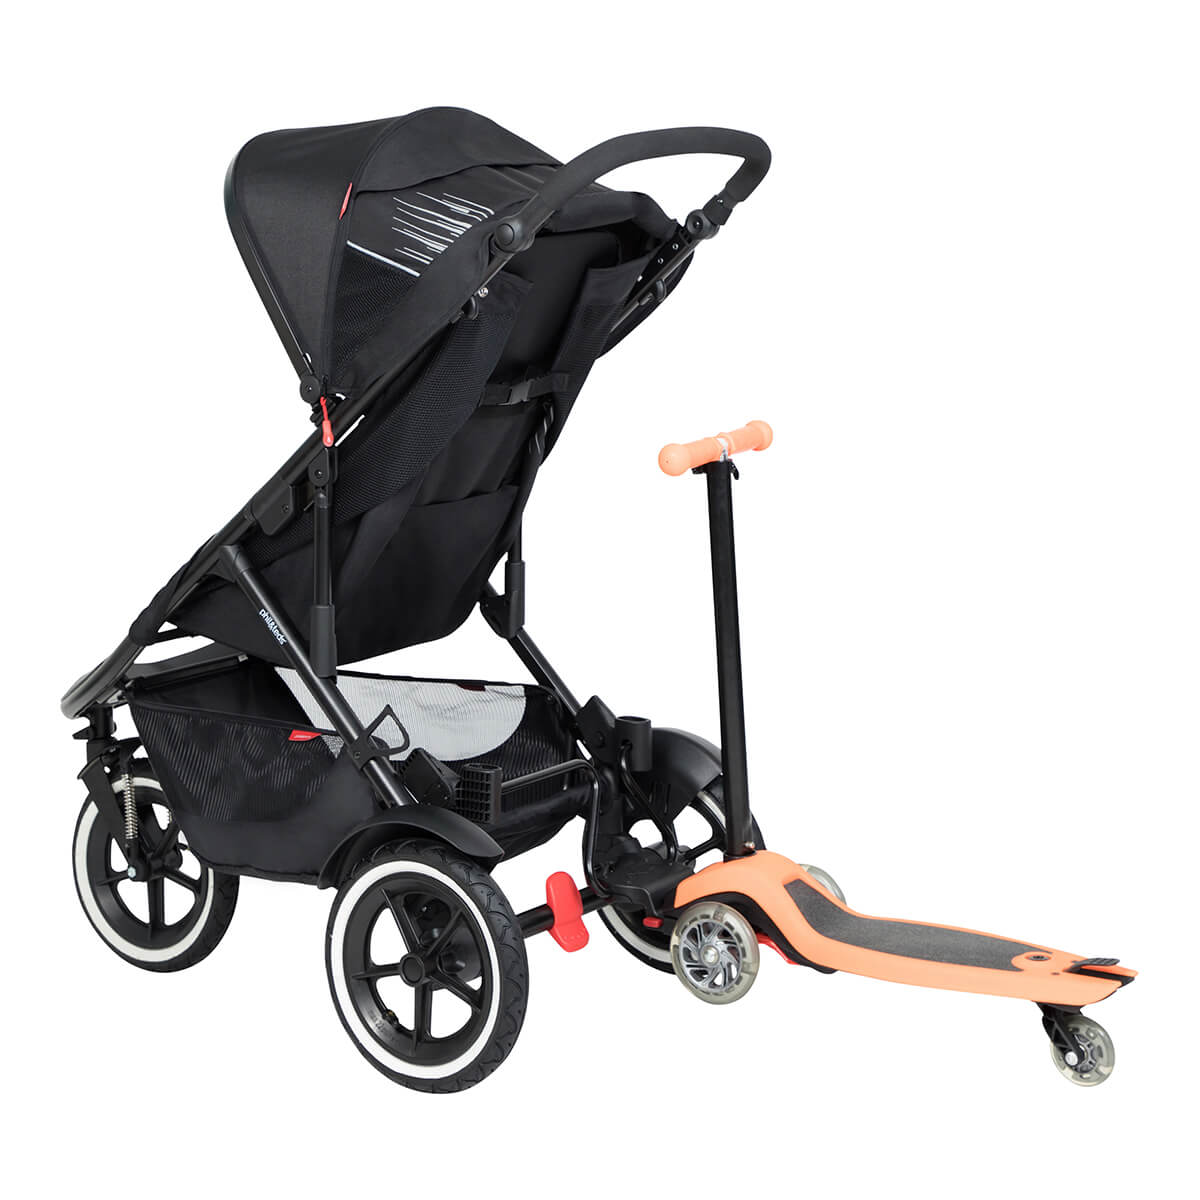 https://cdn.accentuate.io/4384002474081/19793940119722/philteds-sport-buggy-with-freerider-stroller-board-in-rear-v1626147561549.jpg?1200x1200